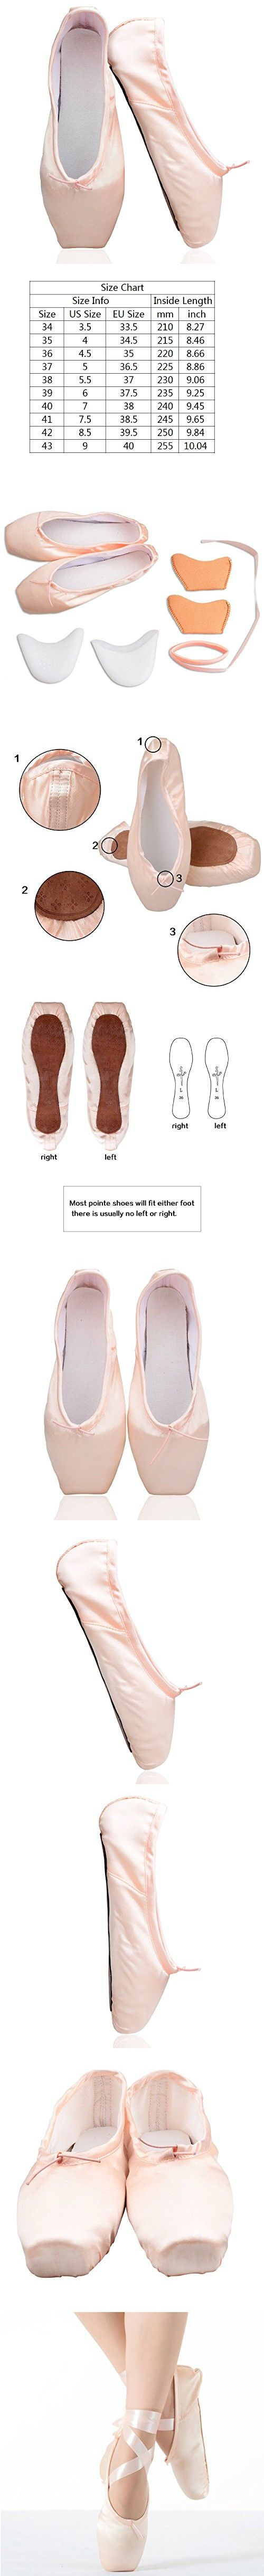 KUKOME New Pink Ballet Dance Toe Shoes Professional Ladies Satin Pointe Shoes (US 6; Inside Lenght 235mm=9.25inch)